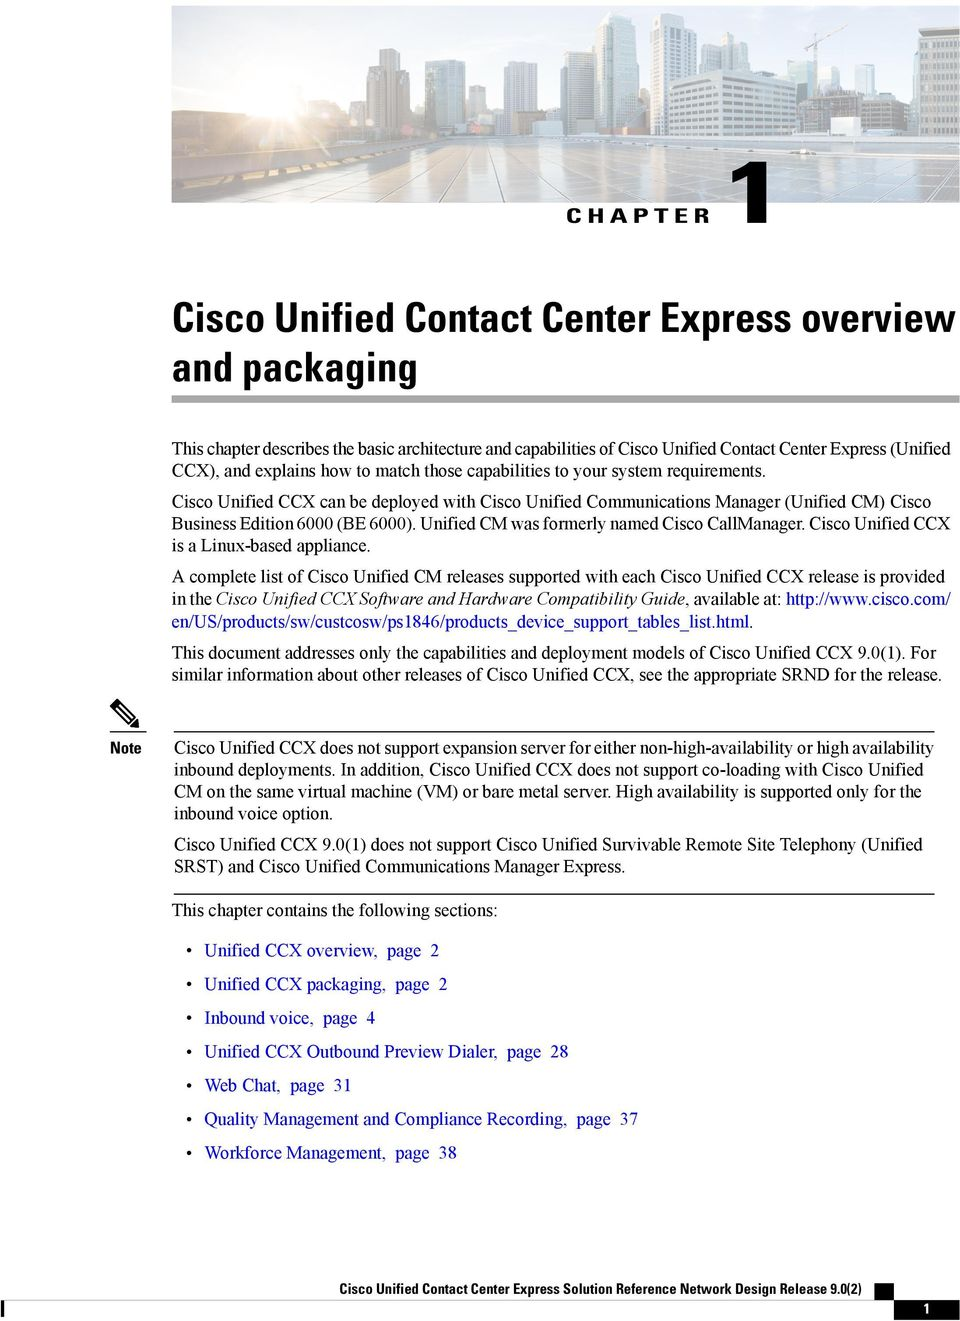 Unified CM was formerly named Cisco CallManager. Cisco Unified CCX is a Linux-based appliance.